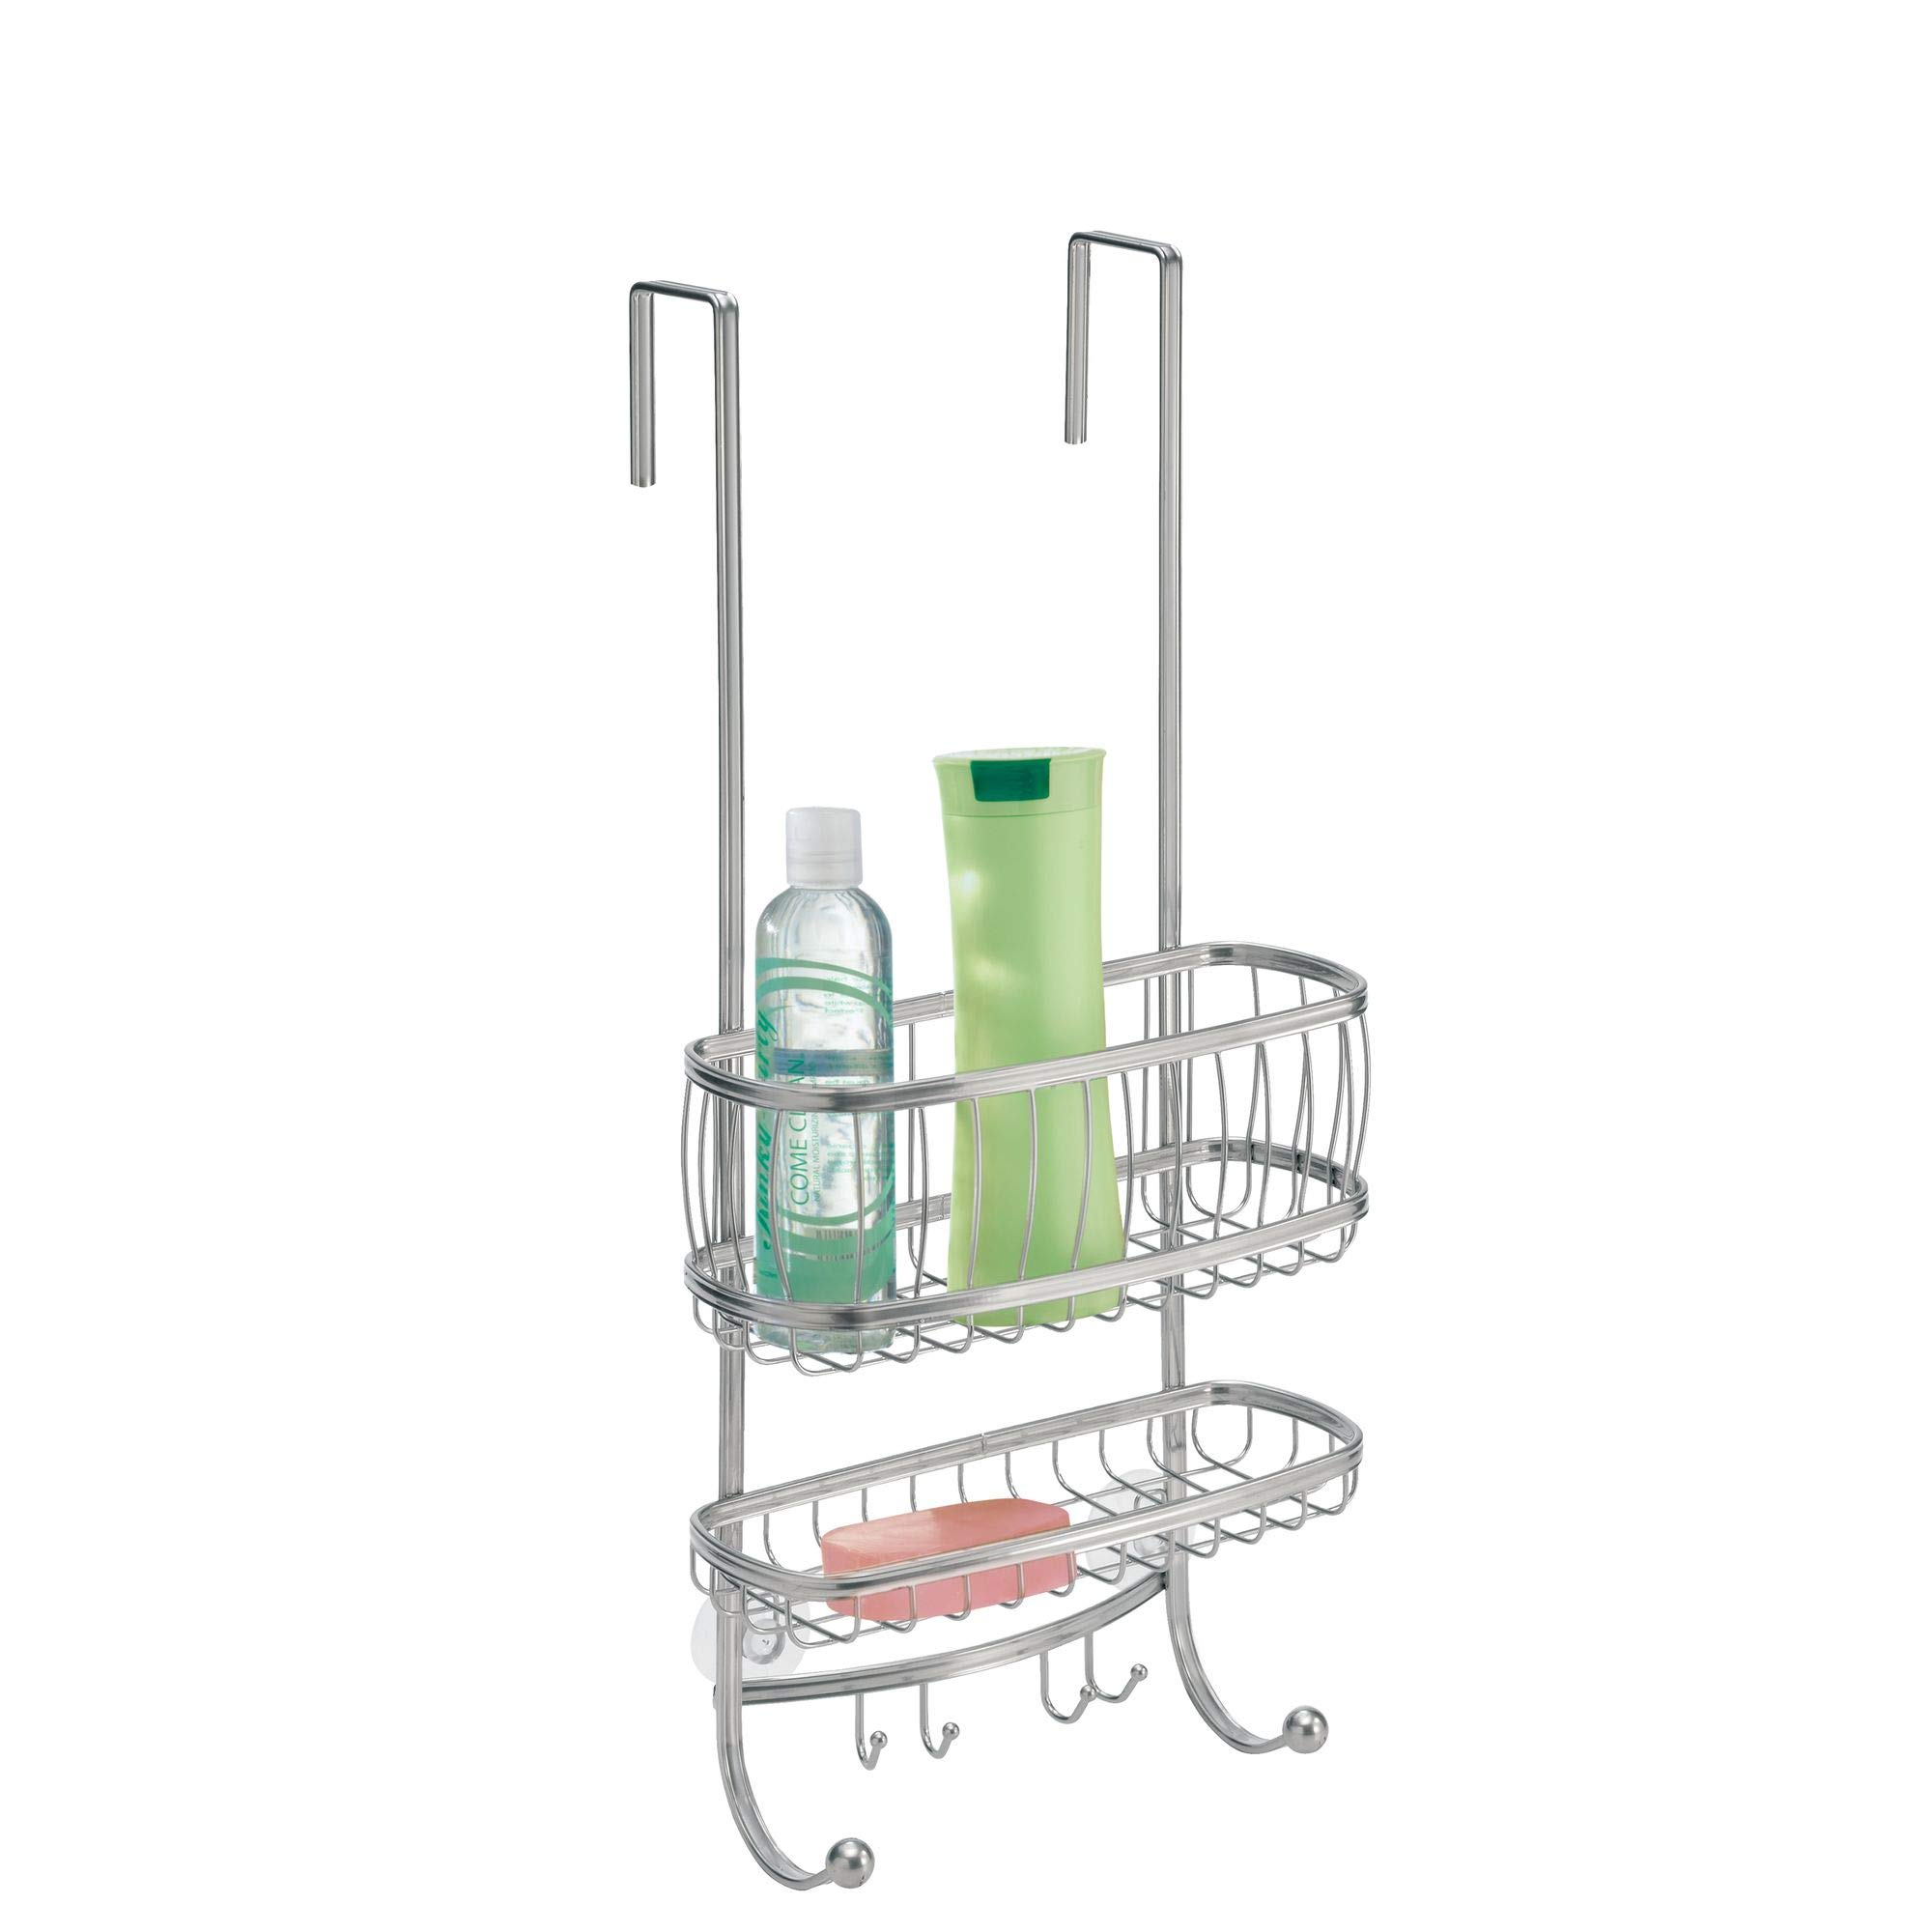 InterDesign York Bathroom Over the Door Shower Caddy with Storage Baskets Shelves and Hooks for Shampoo, Conditioner, Soap, Silver